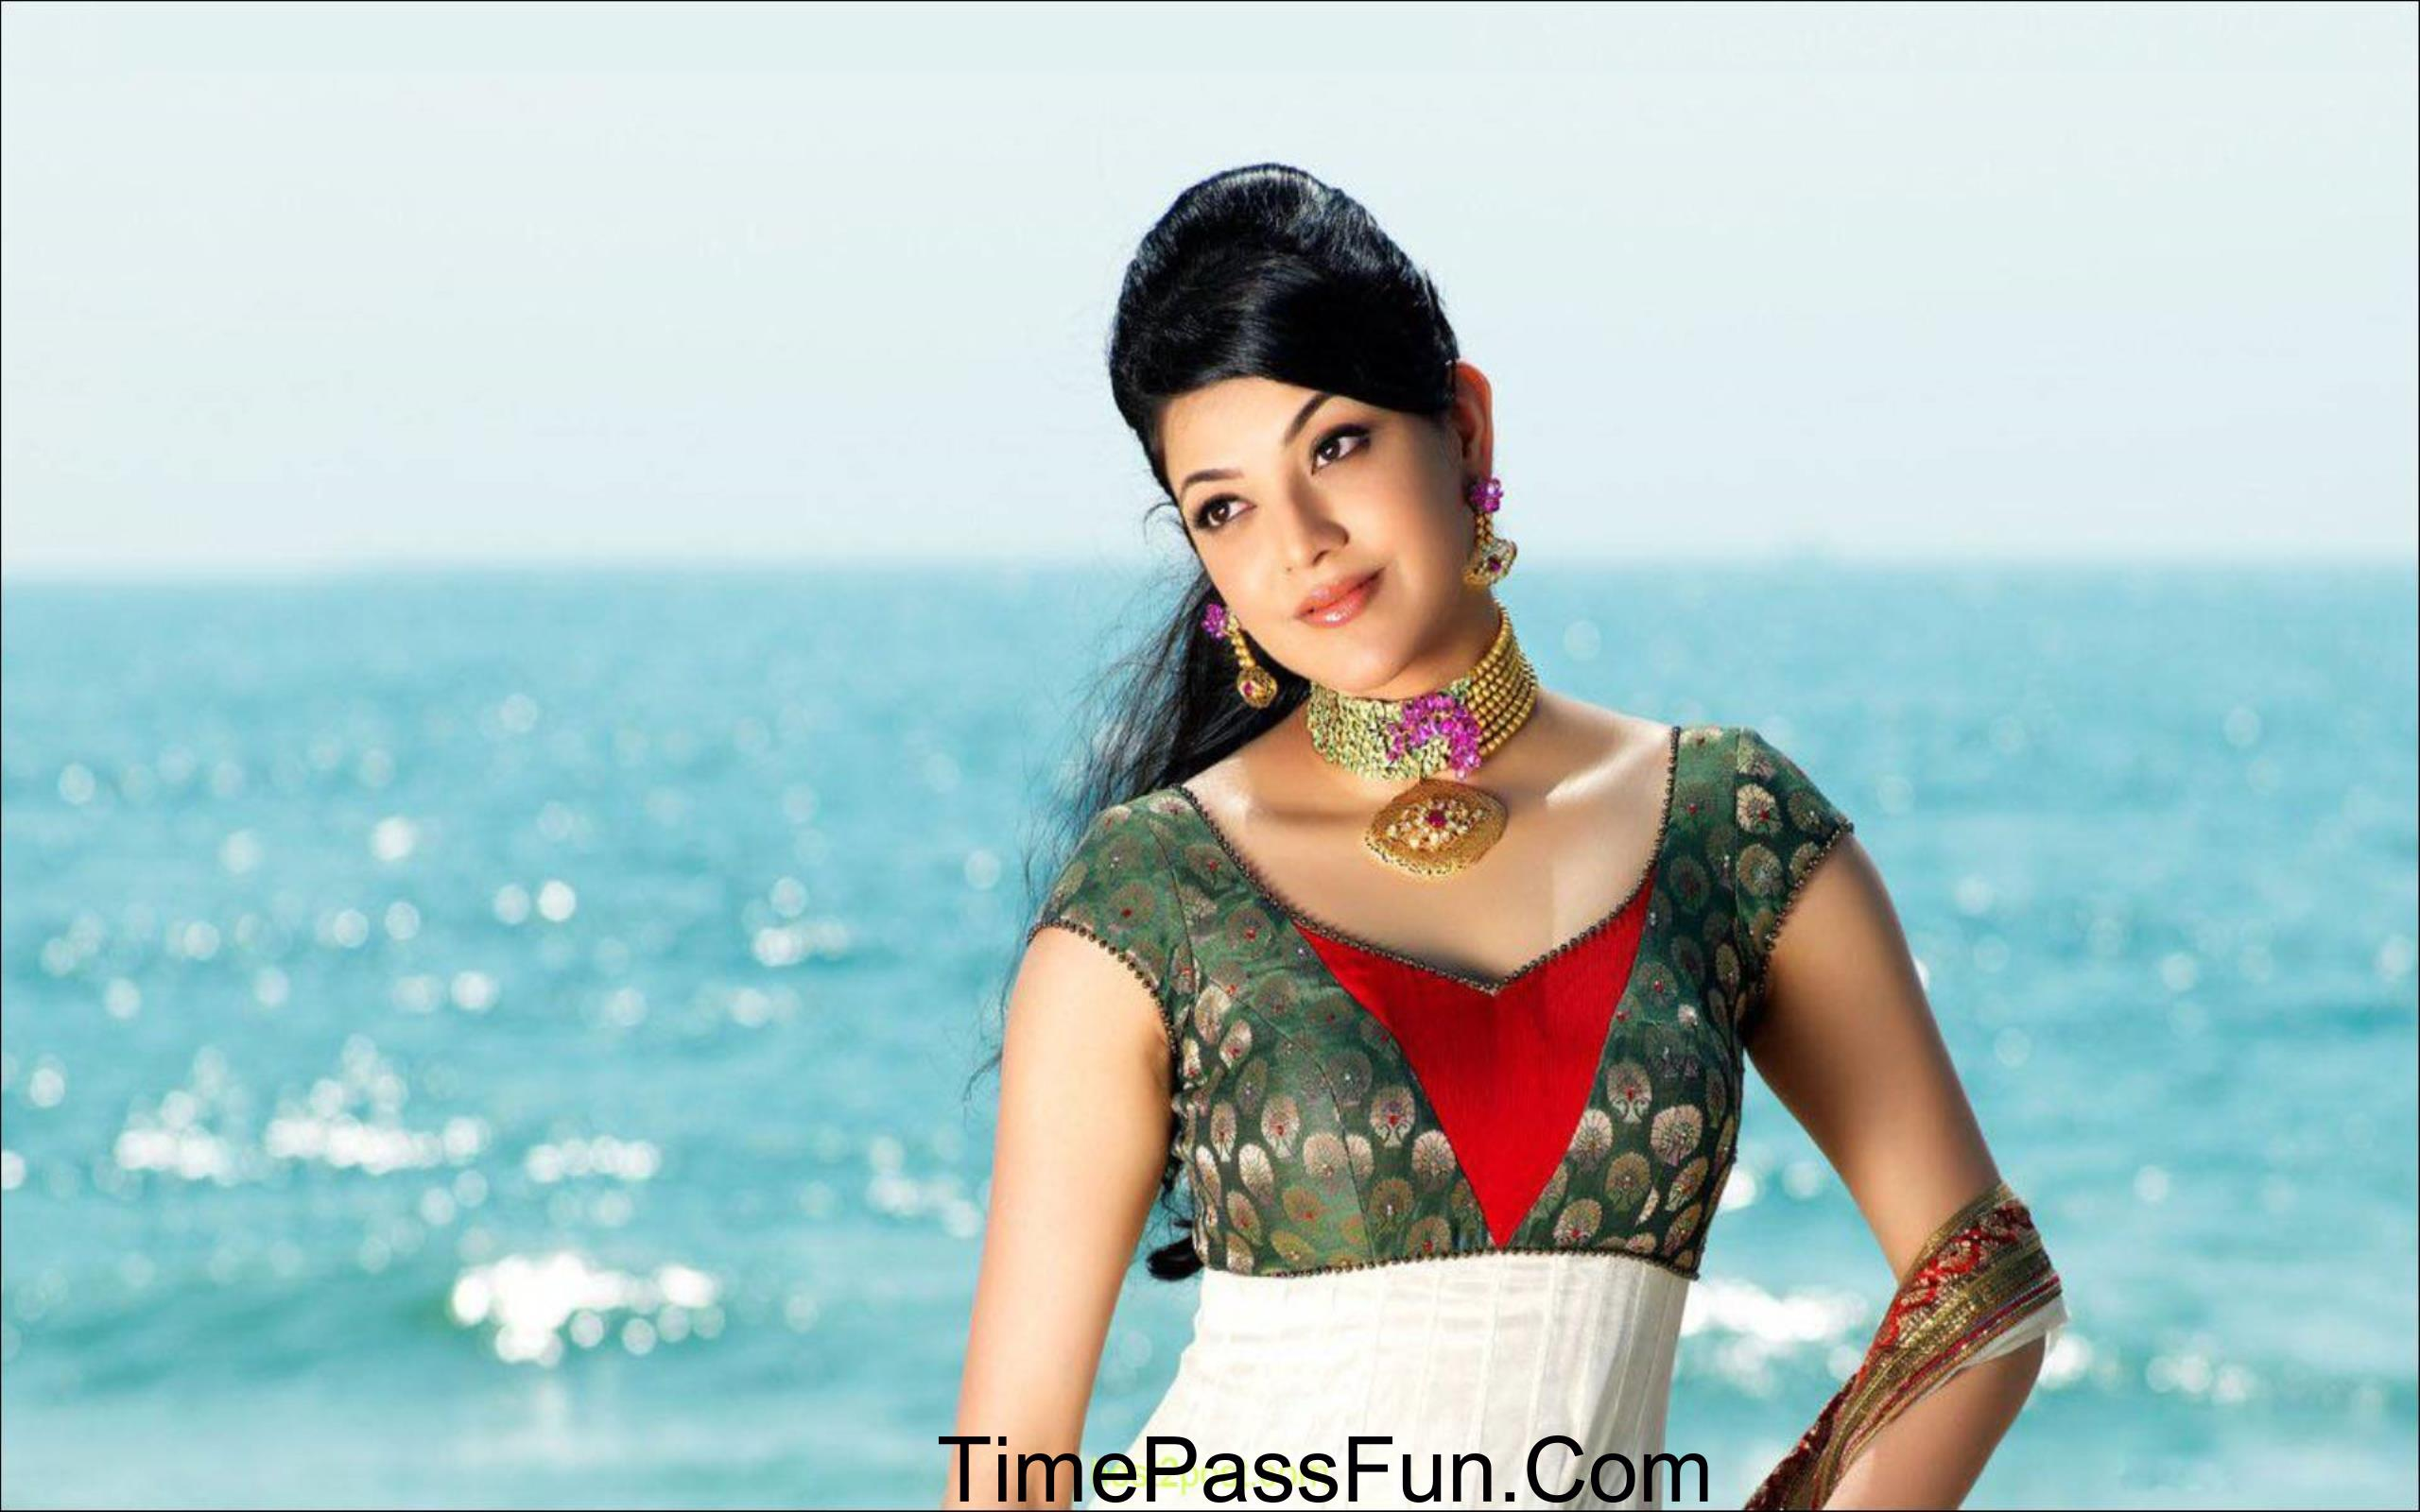 kajal-agarwal hd wallpaper 1 - timepass fun